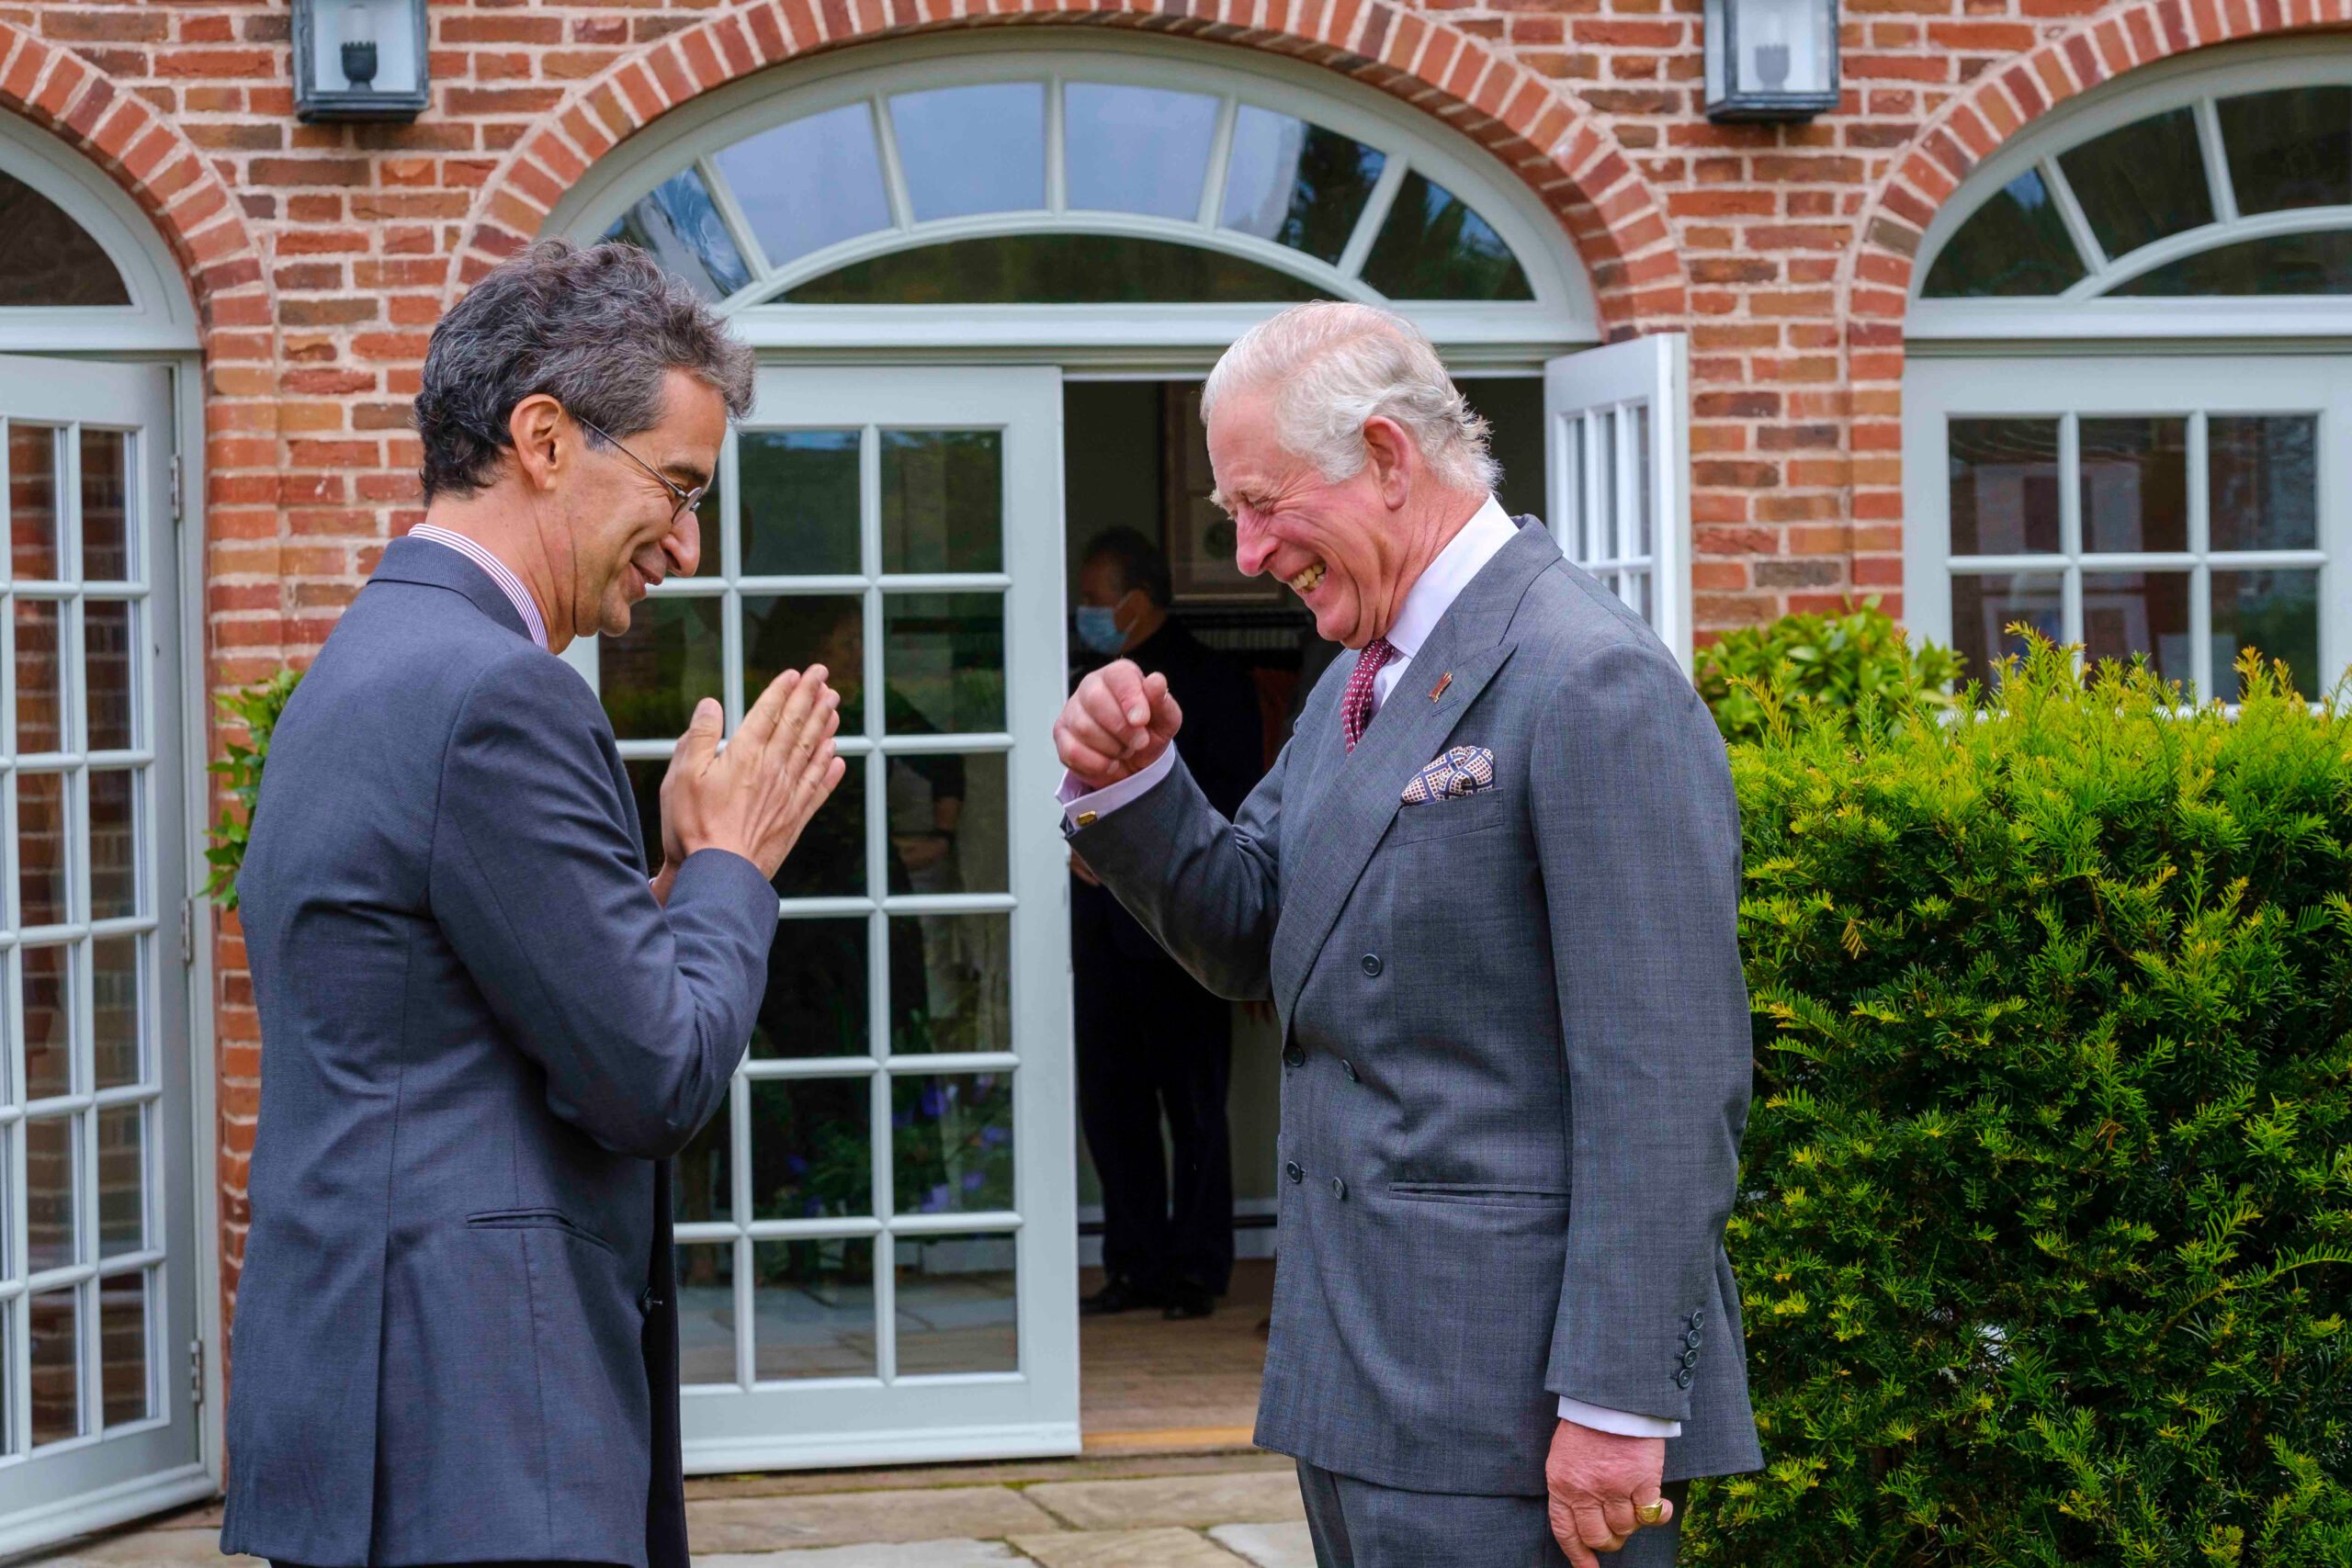 HRH The Prince of Wales & YOOX NET-A-PORTER Group Chairman and CEO Federico Marchetti at final collection review at Dumfries House in September 2020 - copyright Mike Wilkinson